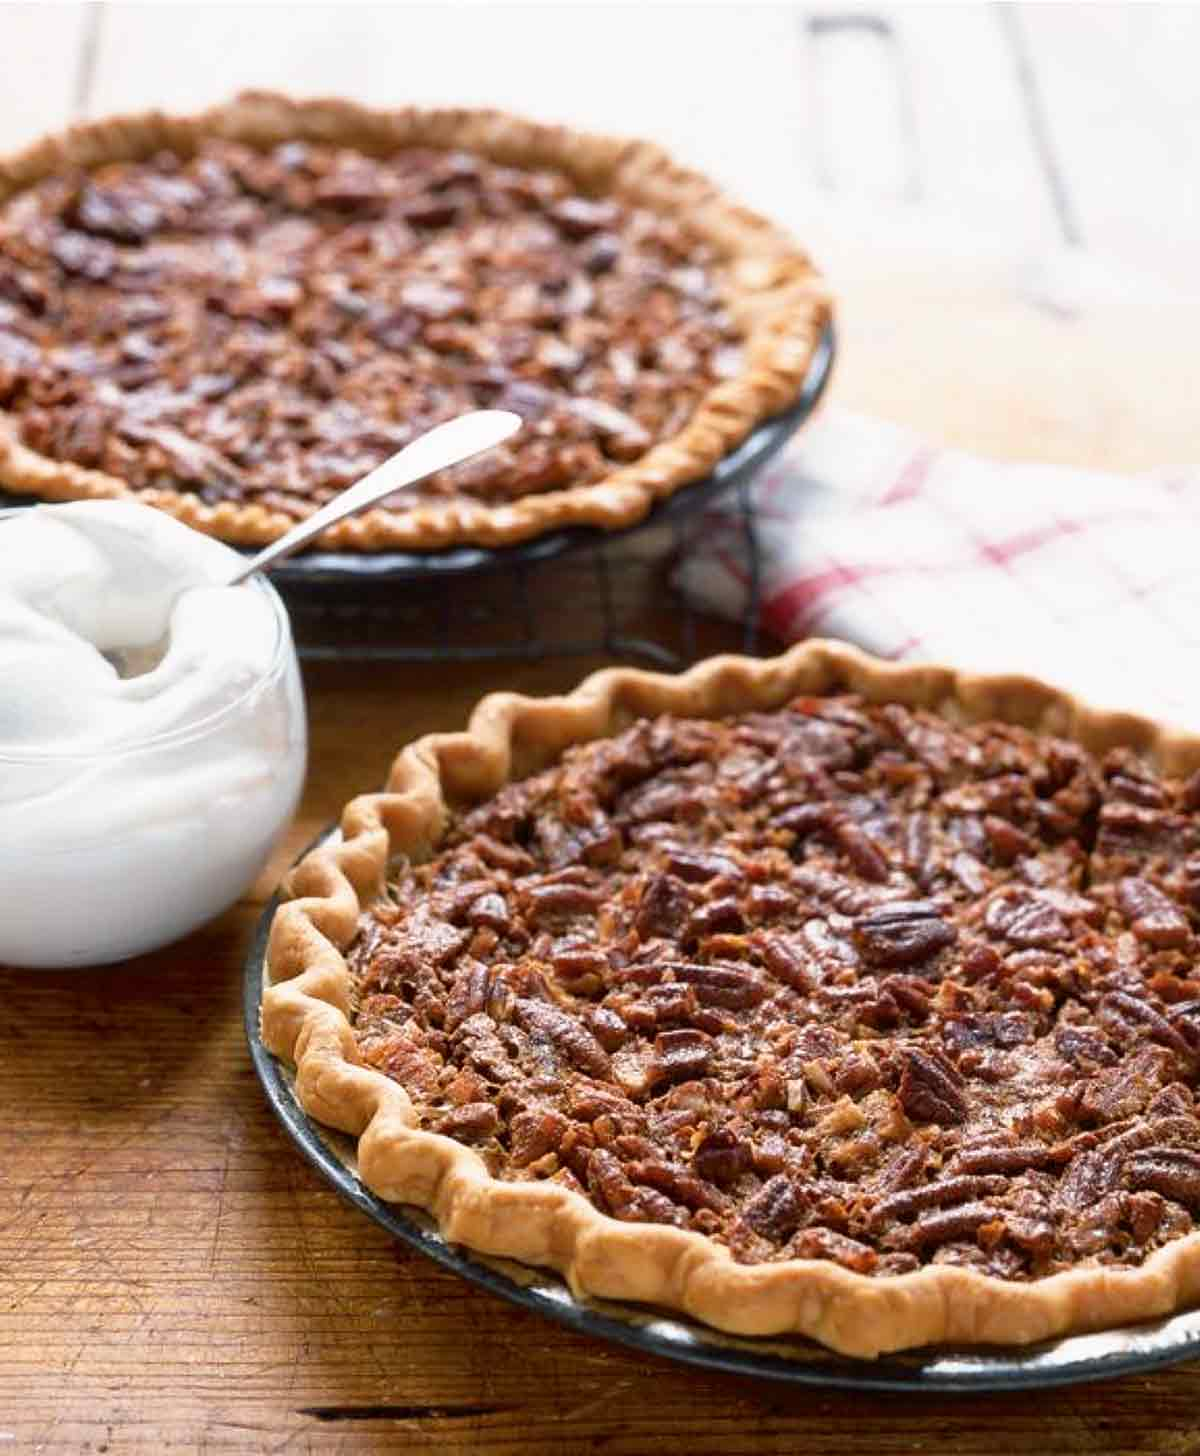 Two Southern pecan pies in pie plates with a bowl of whipped cream in between them.